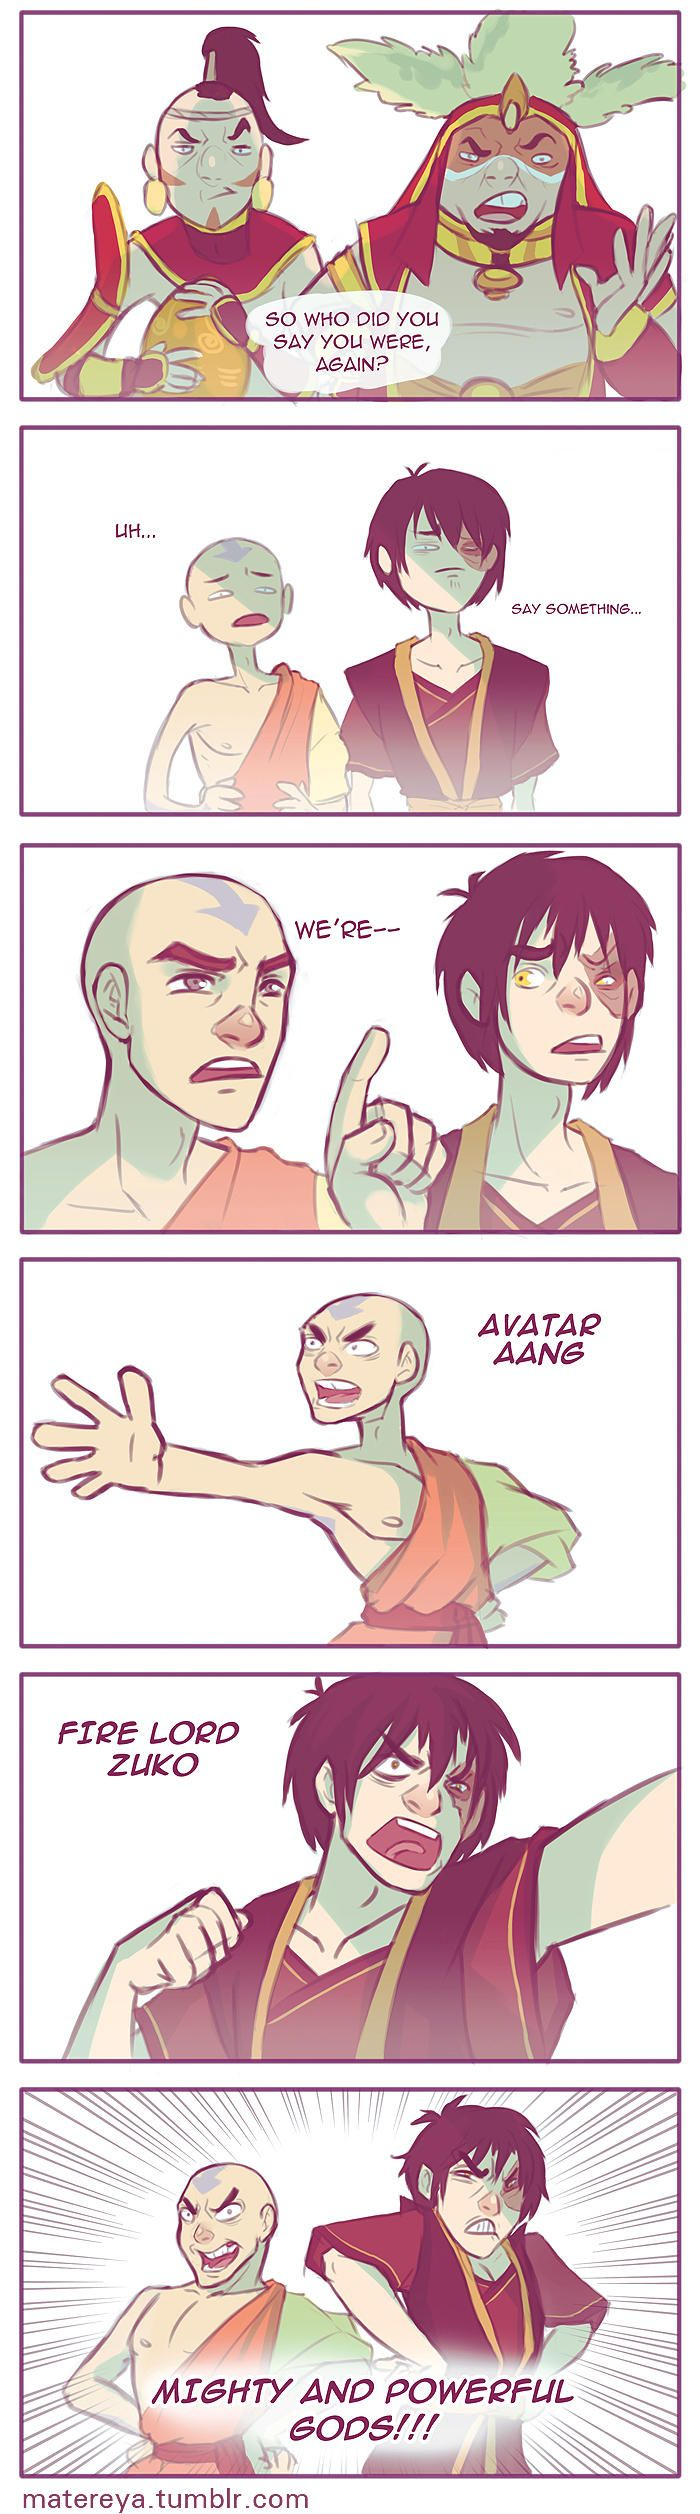 [Image - 898702]   Avatar: The Last Airbender / The Legend of Korra   Know Your Meme